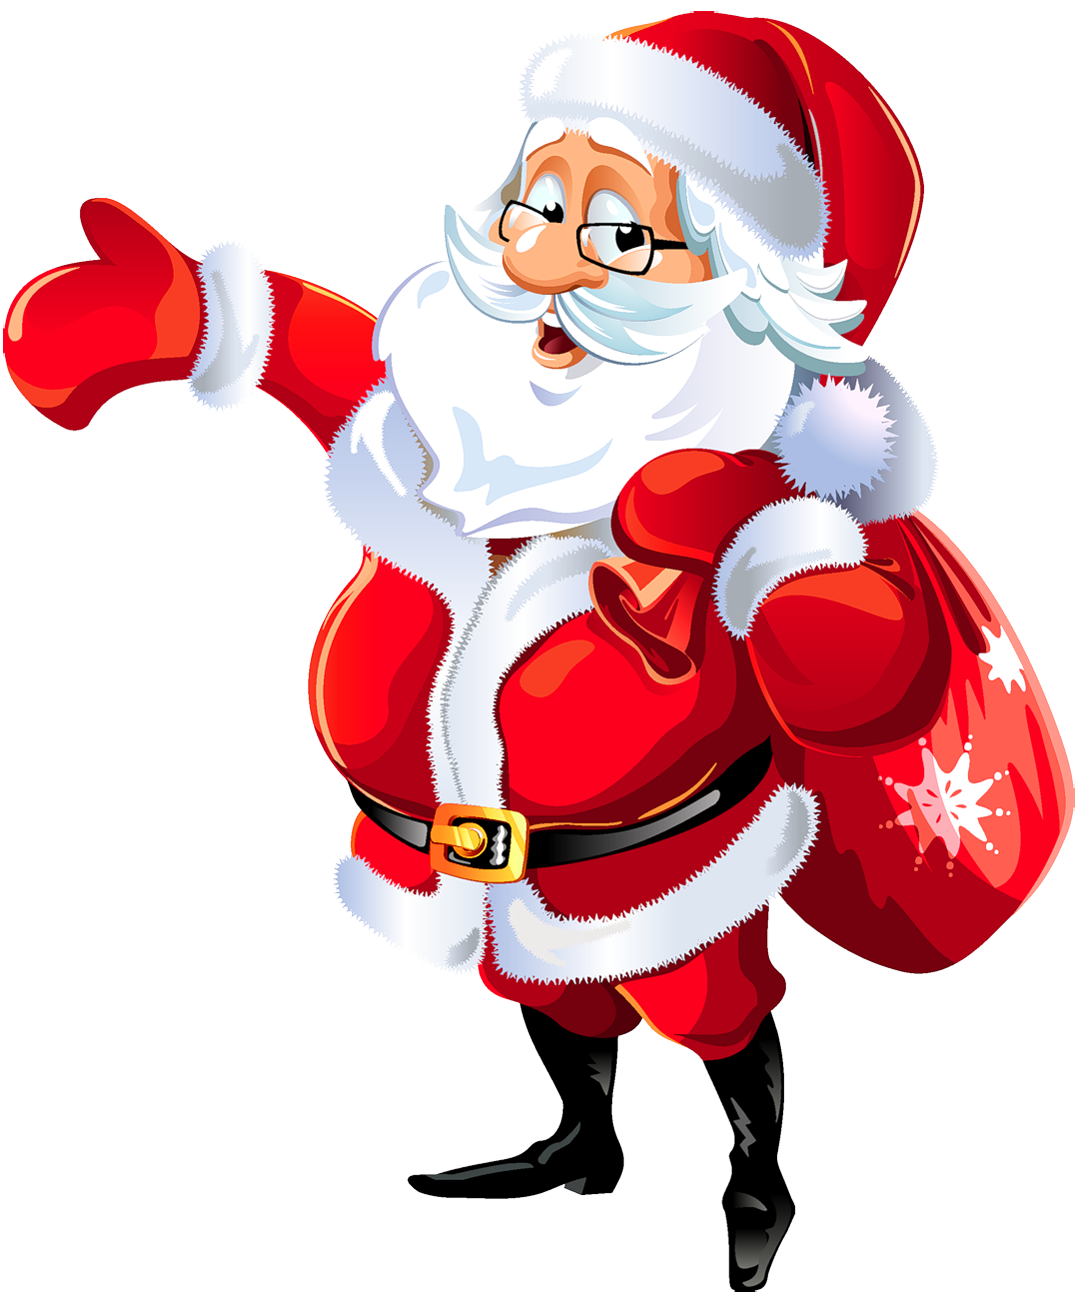 Clause pinterest gallery and. Father clipart christmas santa claus